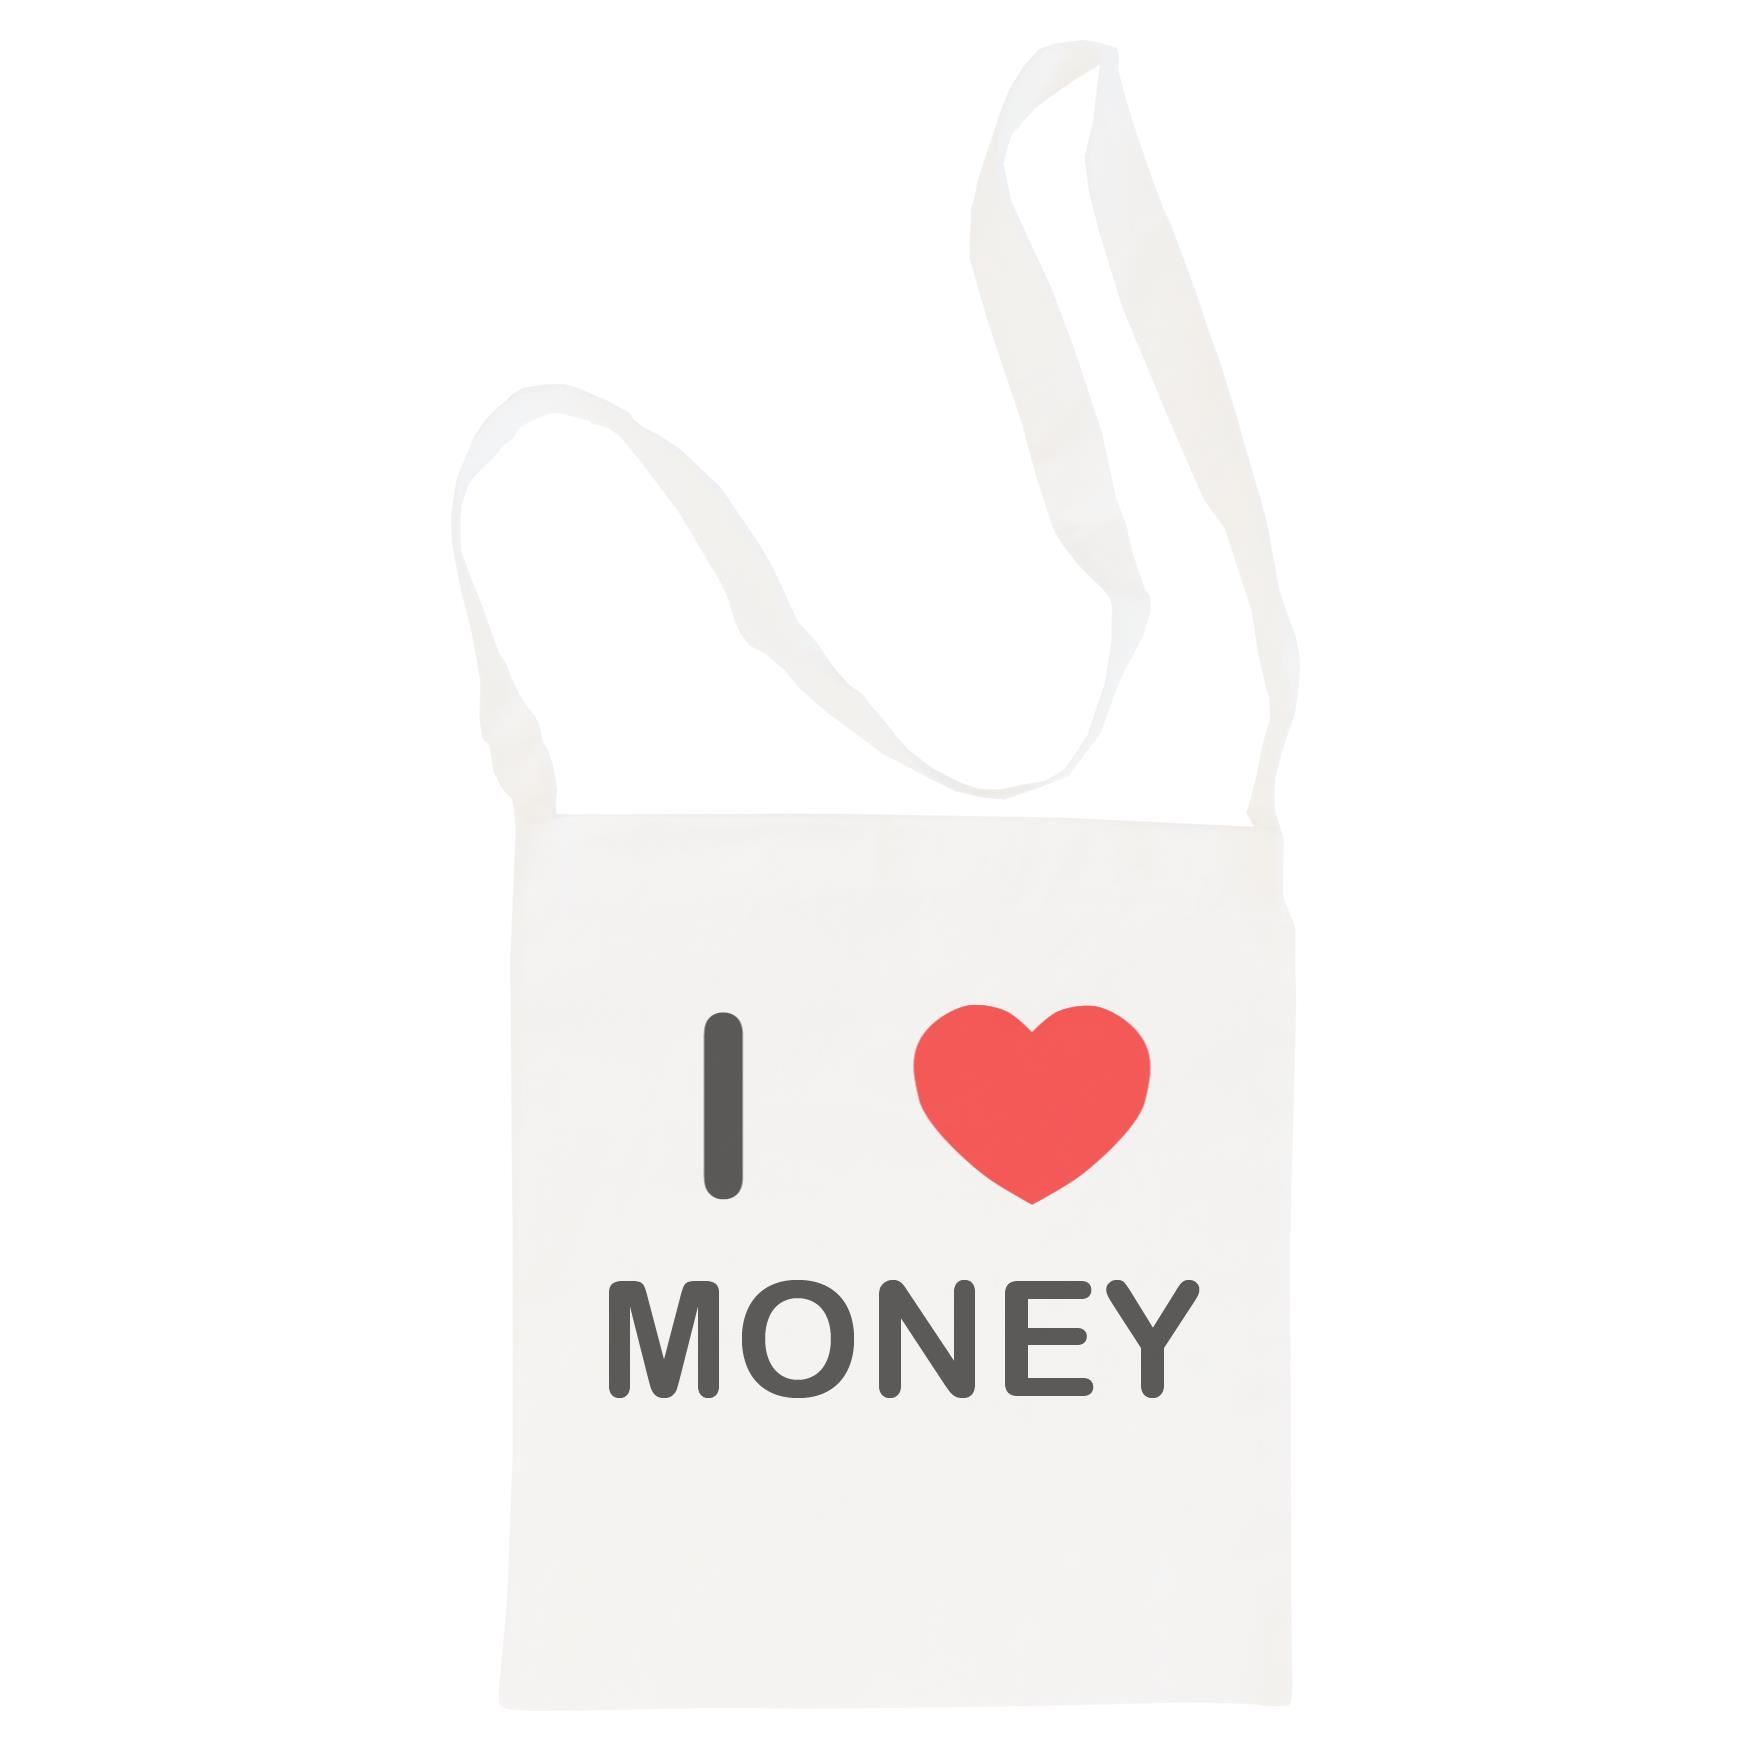 I Love Money - Cotton Bag | Size choice Tote, Shopper or Sling